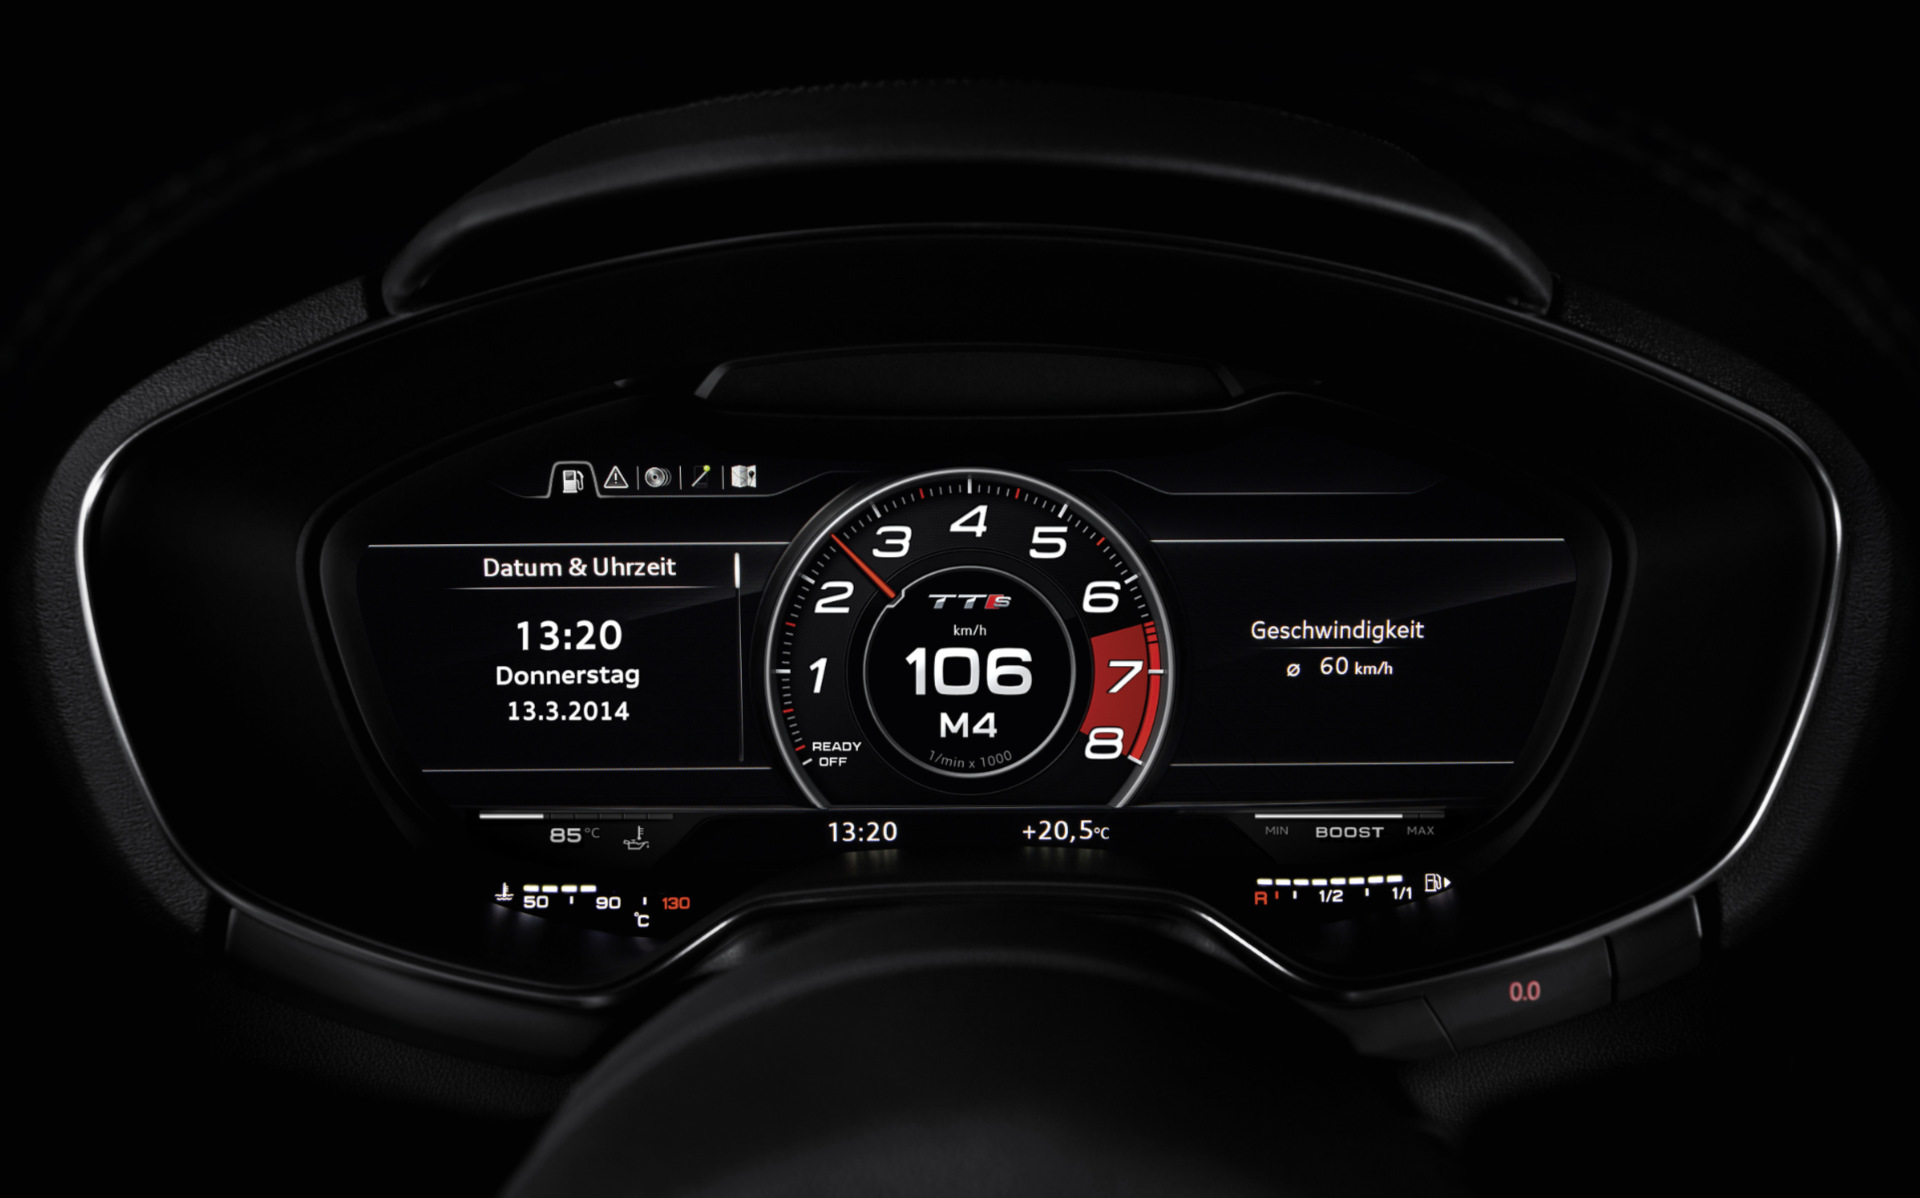 Audi TT Virtual Cockpit showing central tachometer